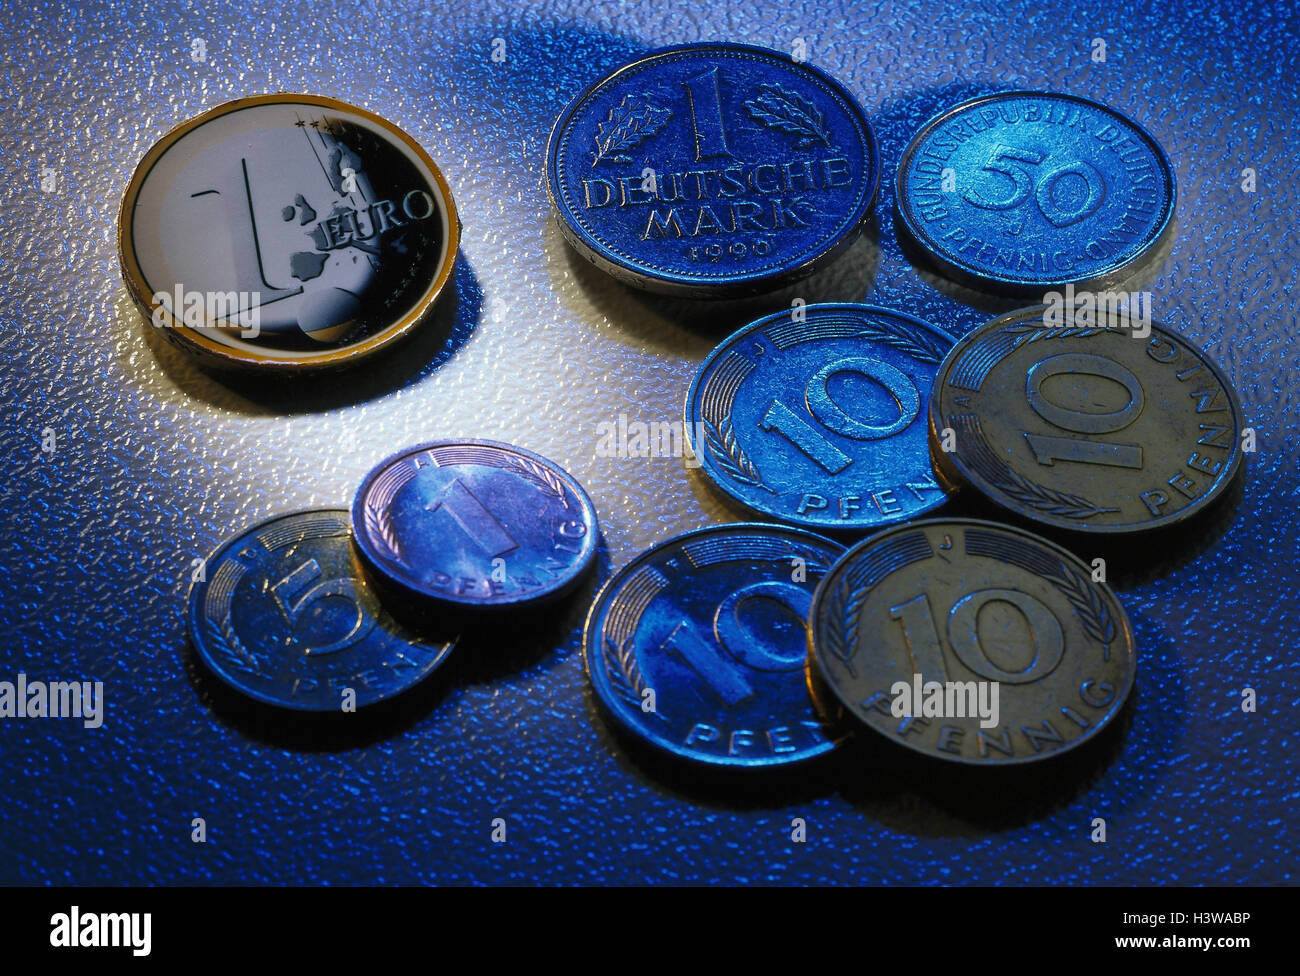 Monetary coins, euro coin, DM coins, equivalent icon, the EU, single currency, changeover, introduction, change, - Stock Image